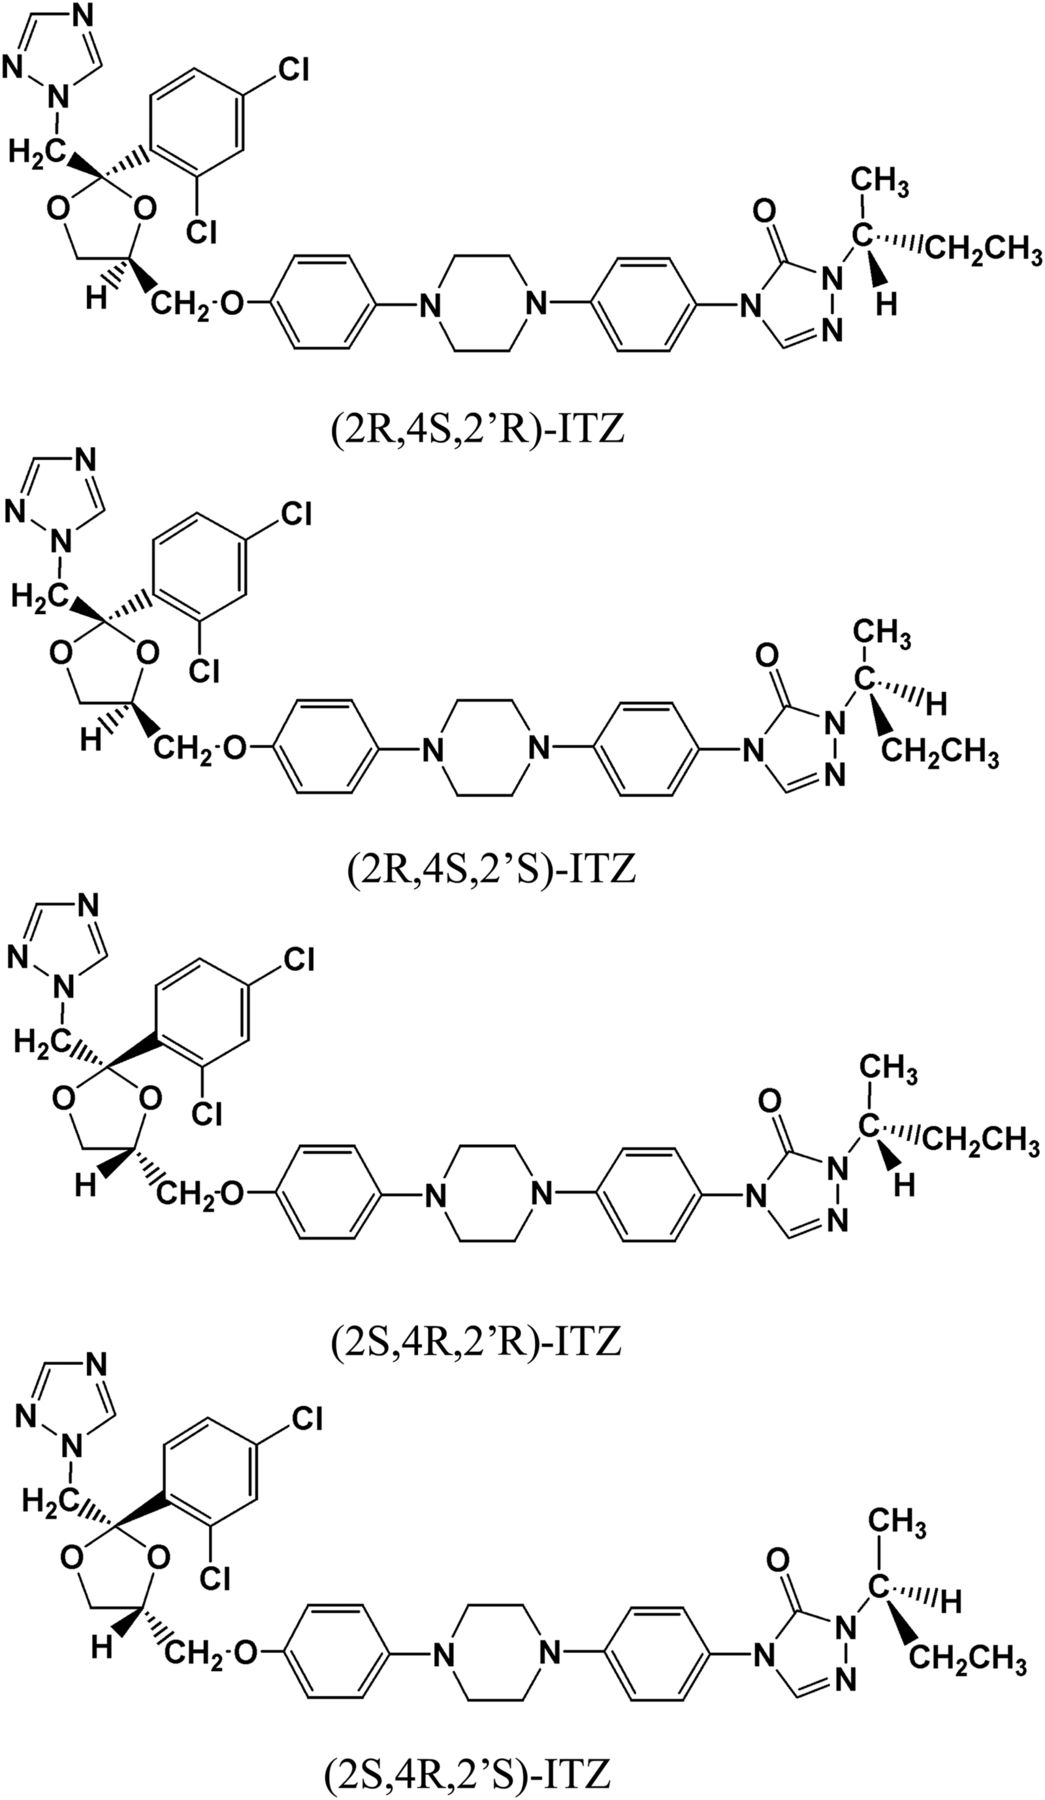 """Correction to """"Stereochemical Aspects of Itraconazole"""